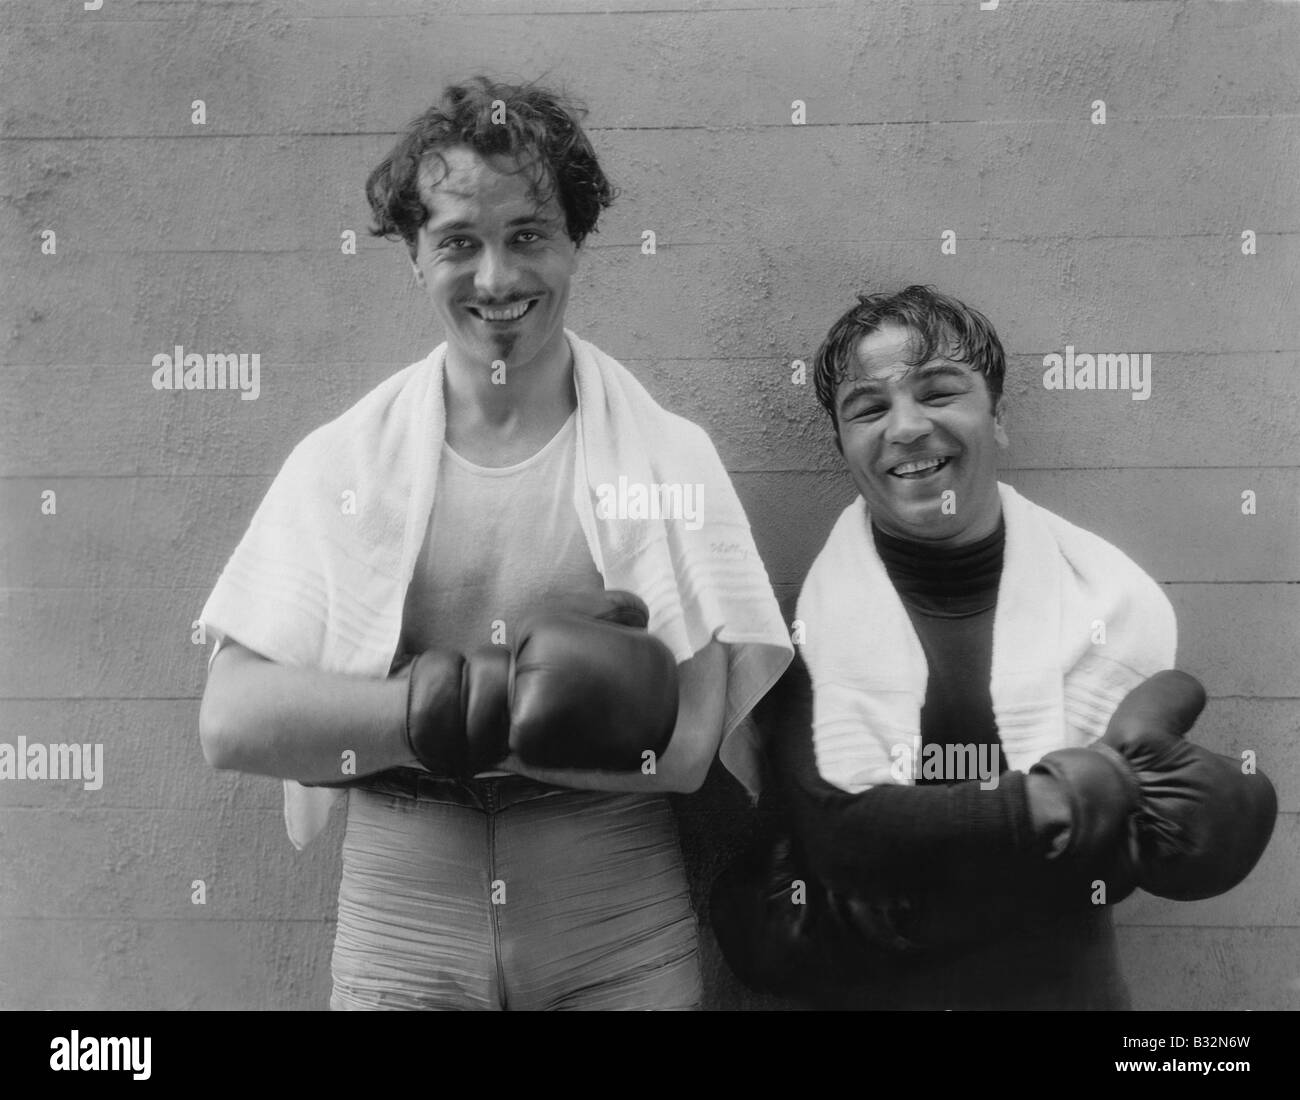 Portrait of two boxers - Stock Image